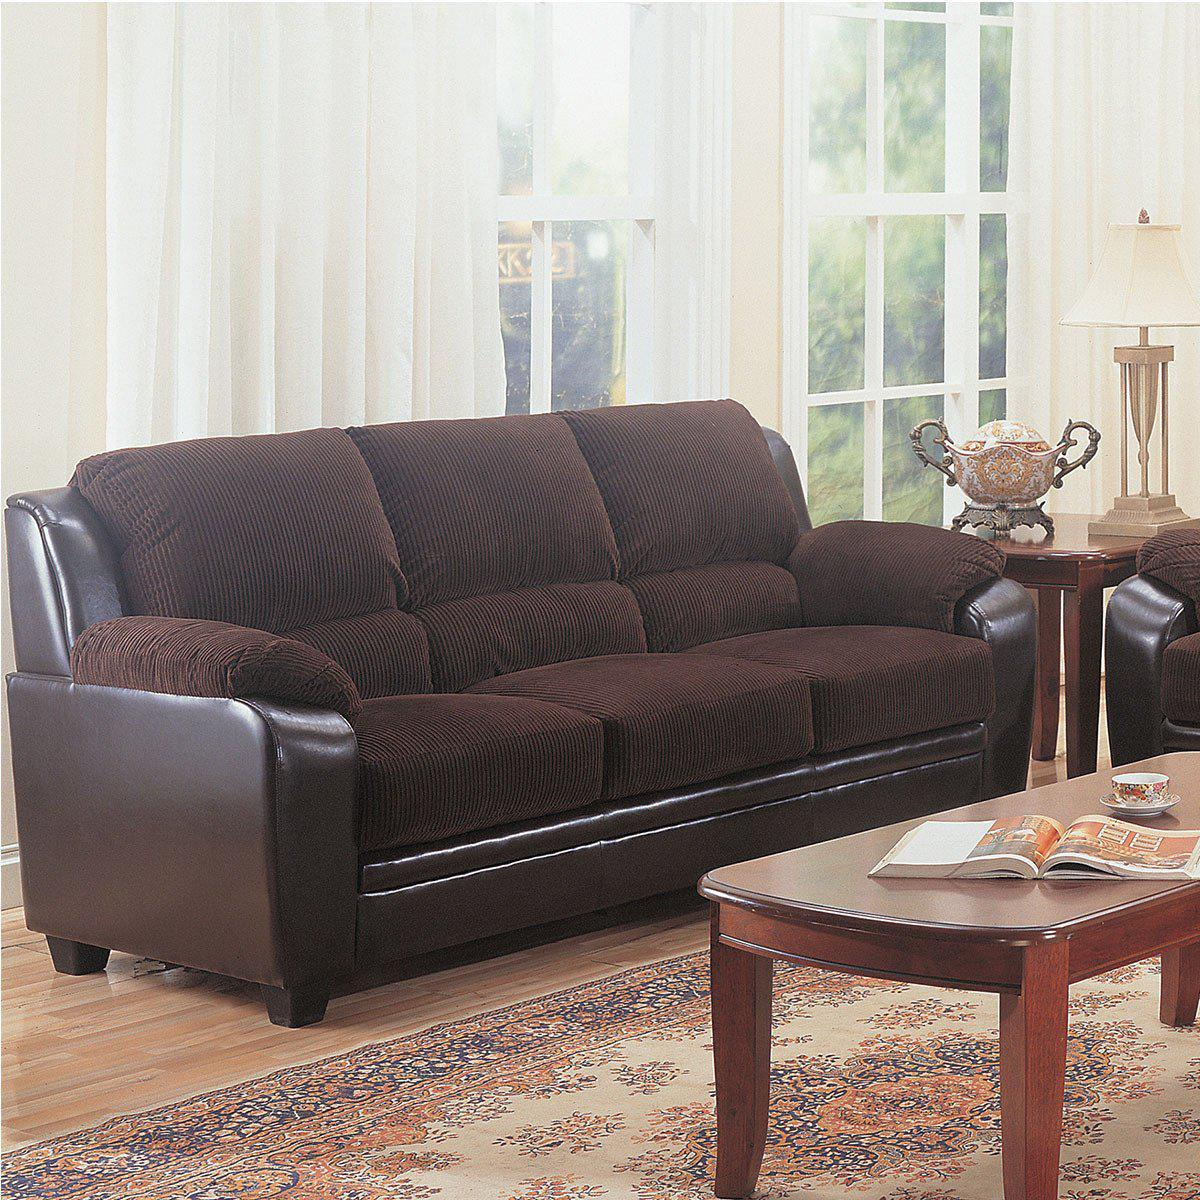 Monika Sofa-sofas-Jennifer Furniture